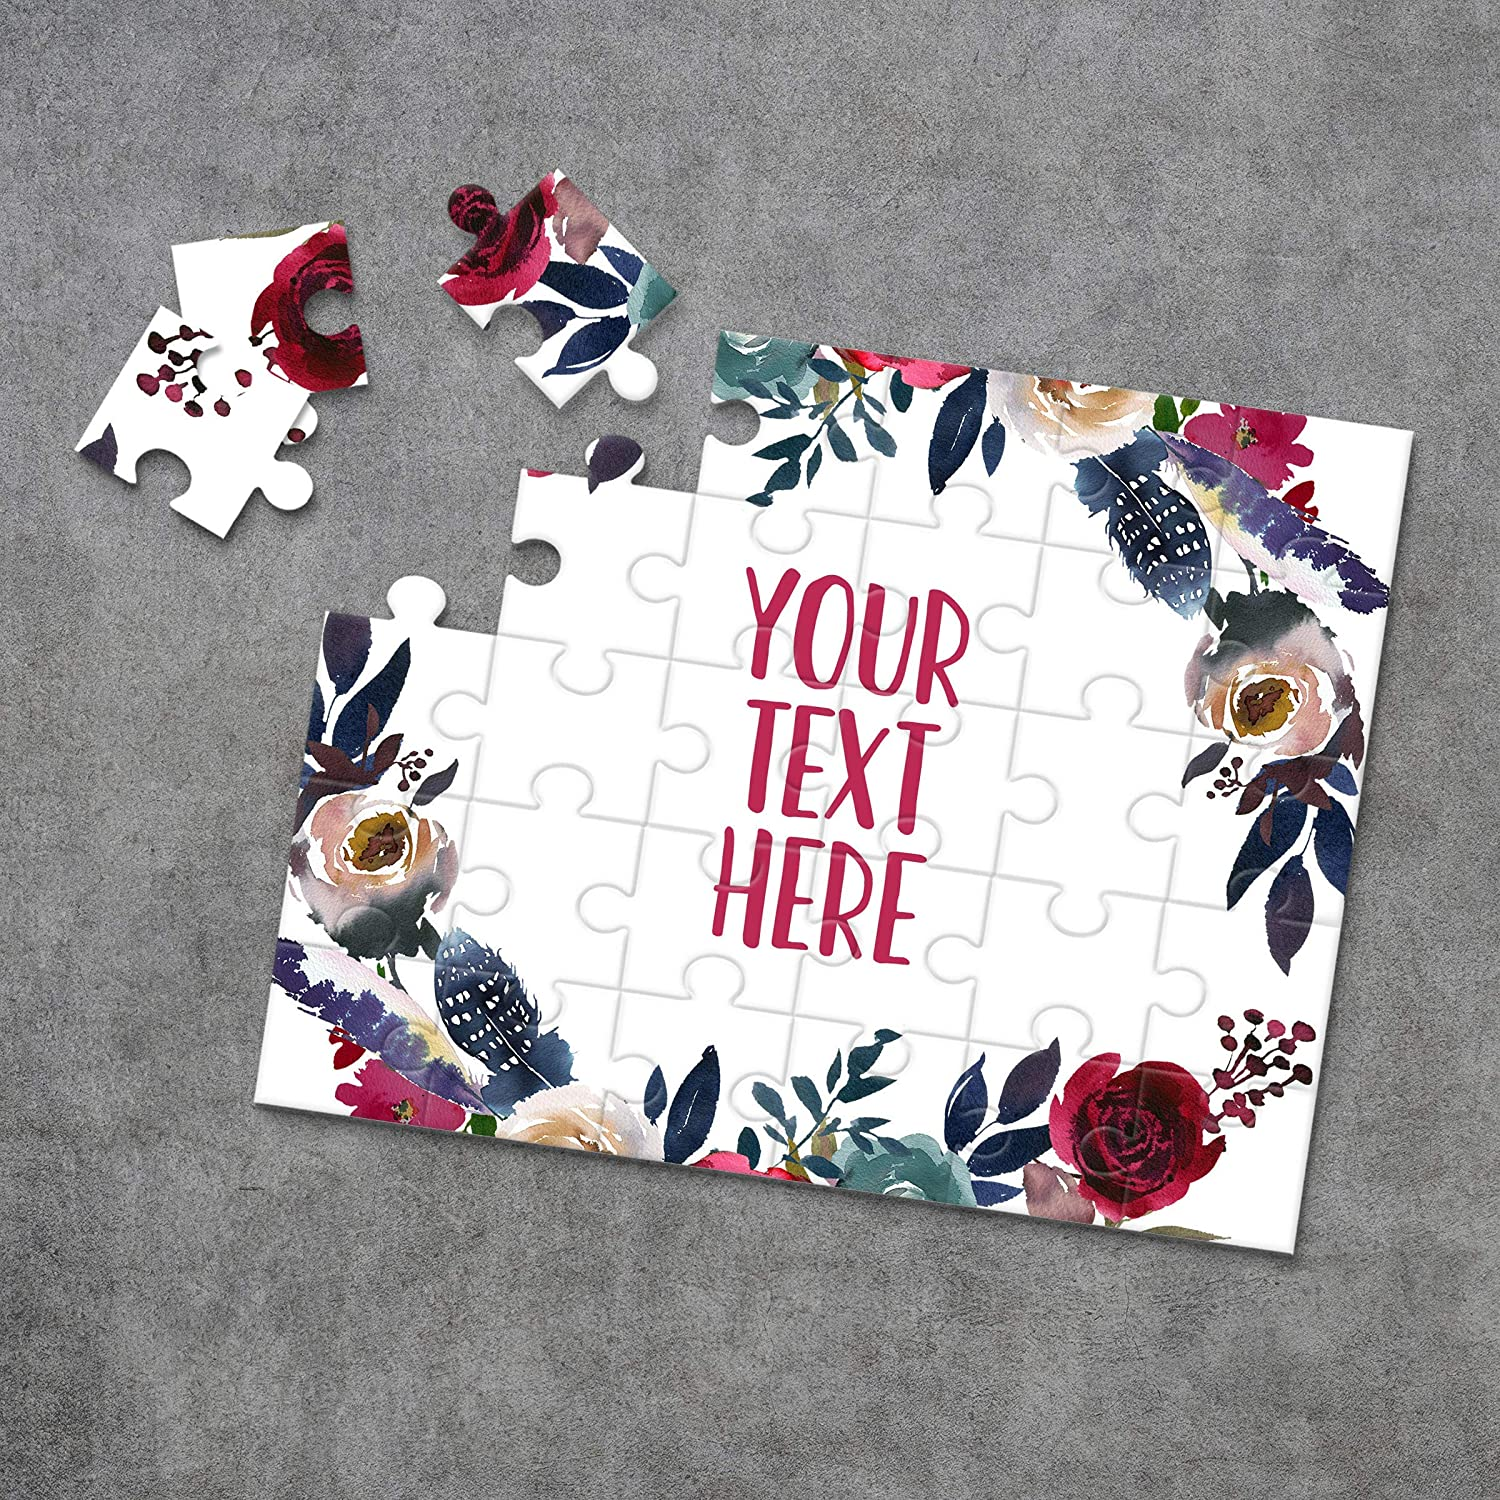 Custom Puzzle CYOP0147 Announcement Ideas Personalized Puzzle Create Your Own Puzzle Pregnancy Announcement Wedding Announcement